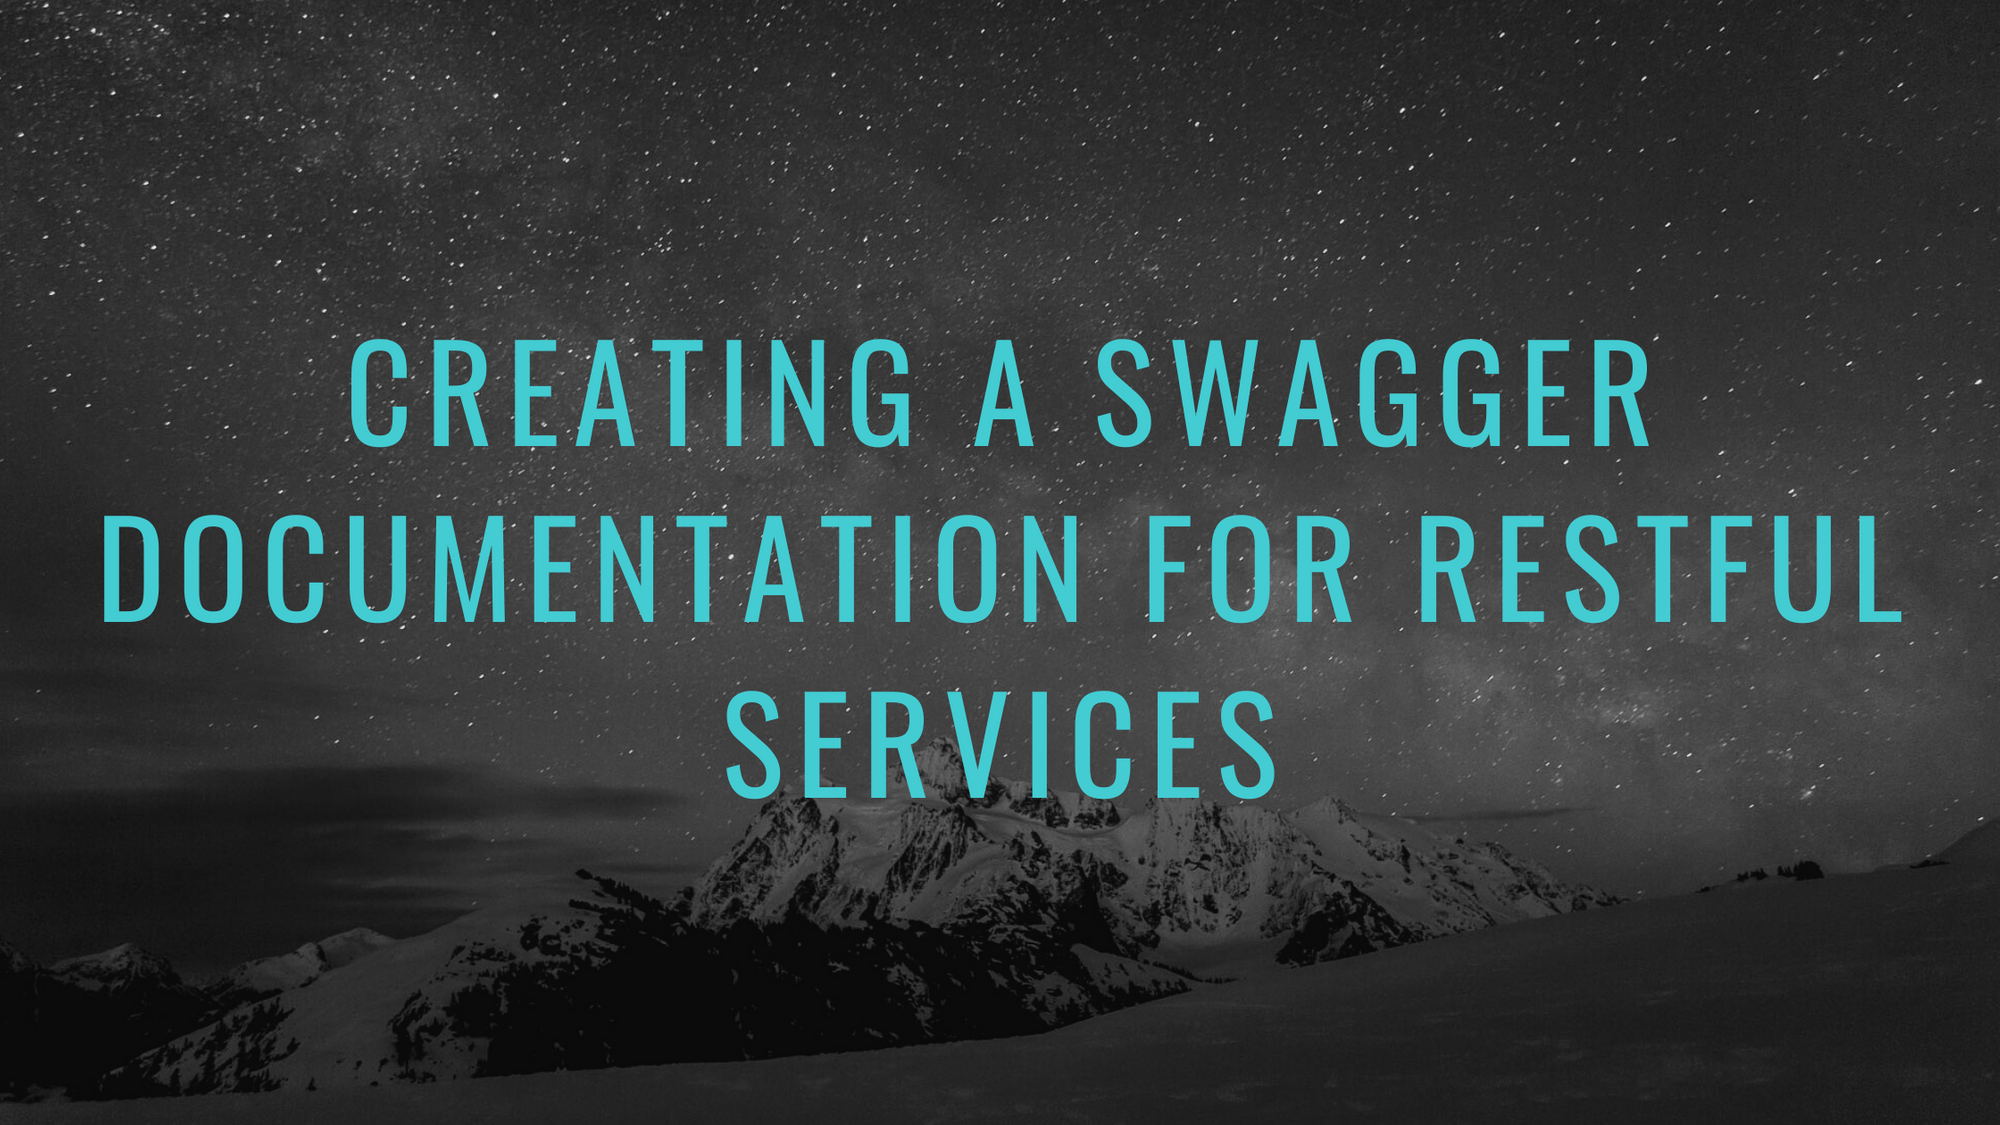 Creating A Swagger Documentation For RESTful Services